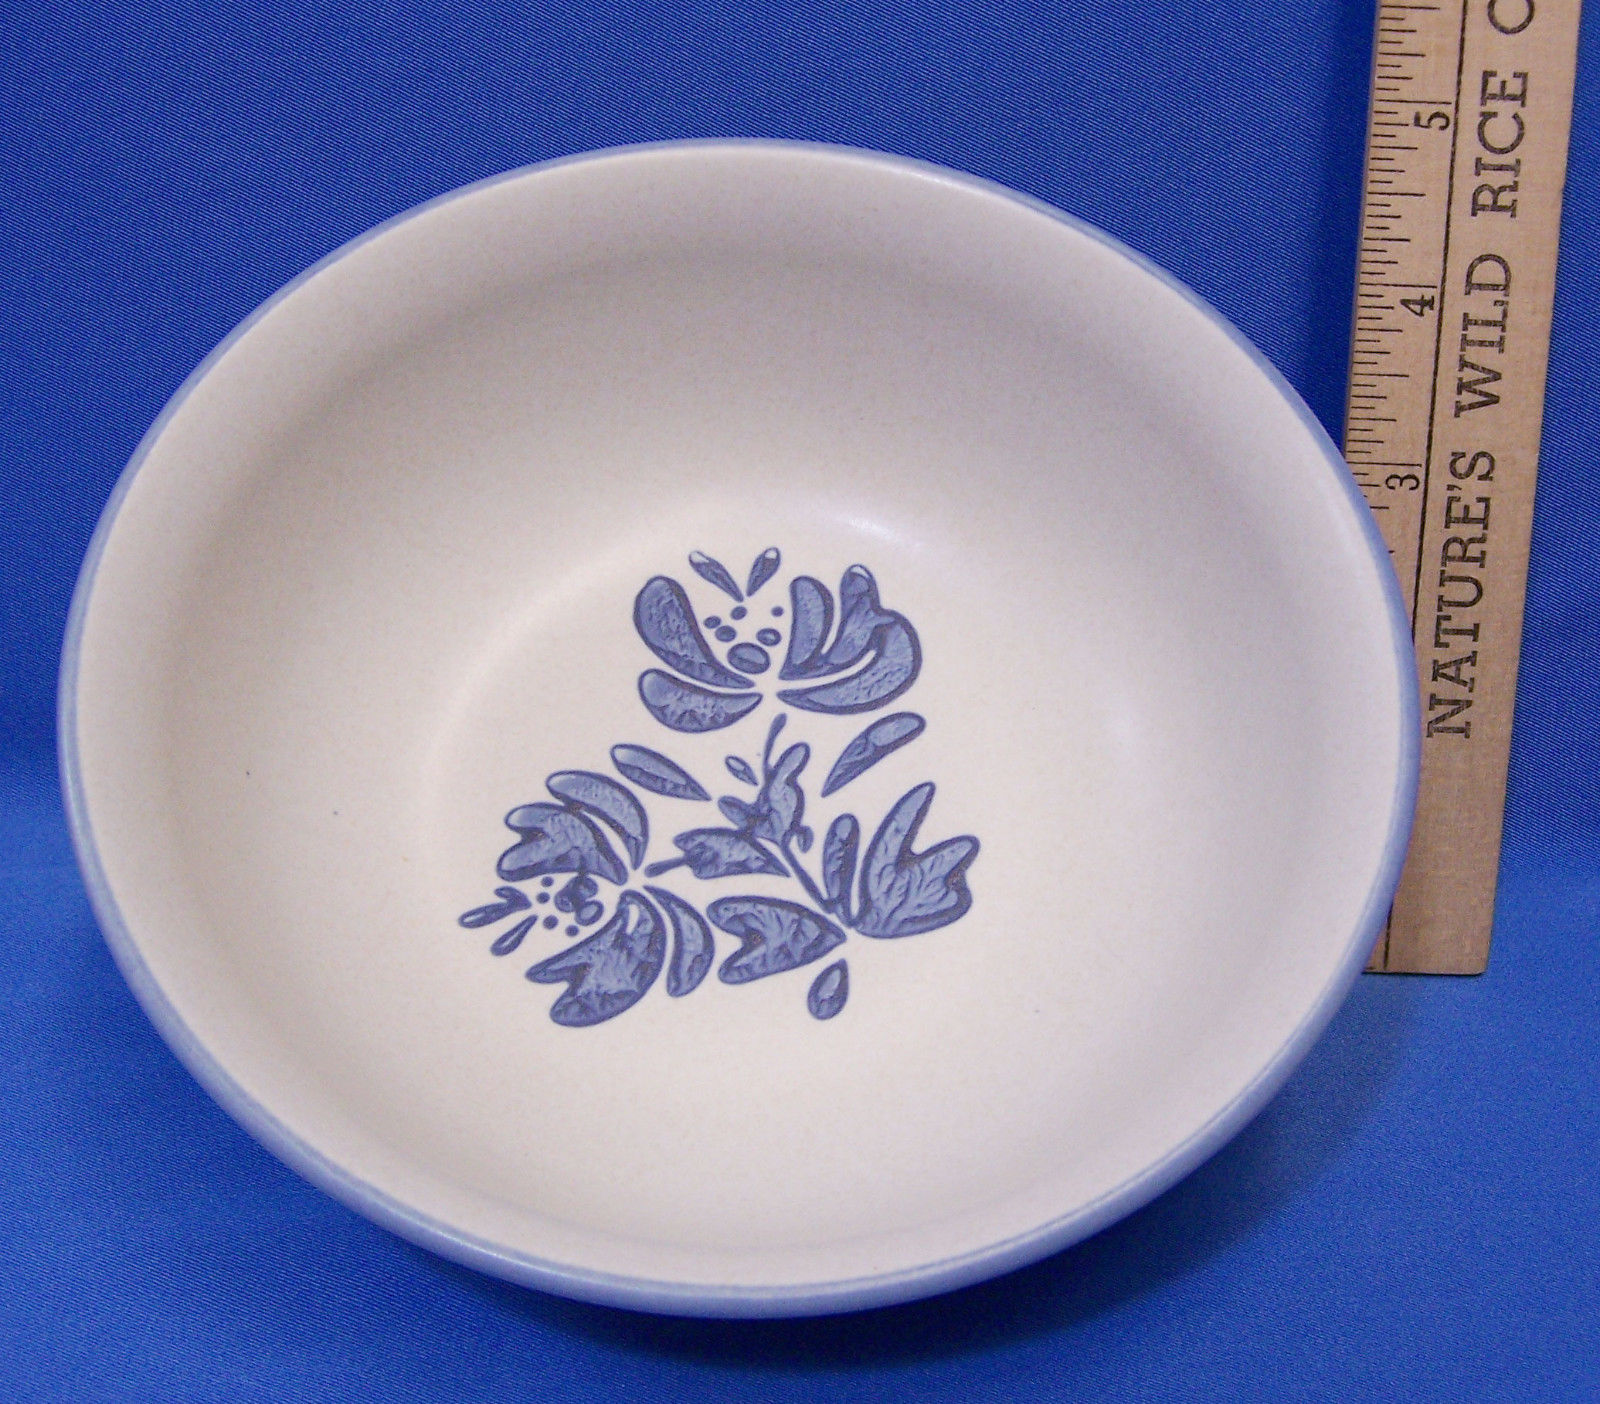 Primary image for Pfaltzgraff Yorktowne Cereal Soup Bowl Blue Flower Pattern